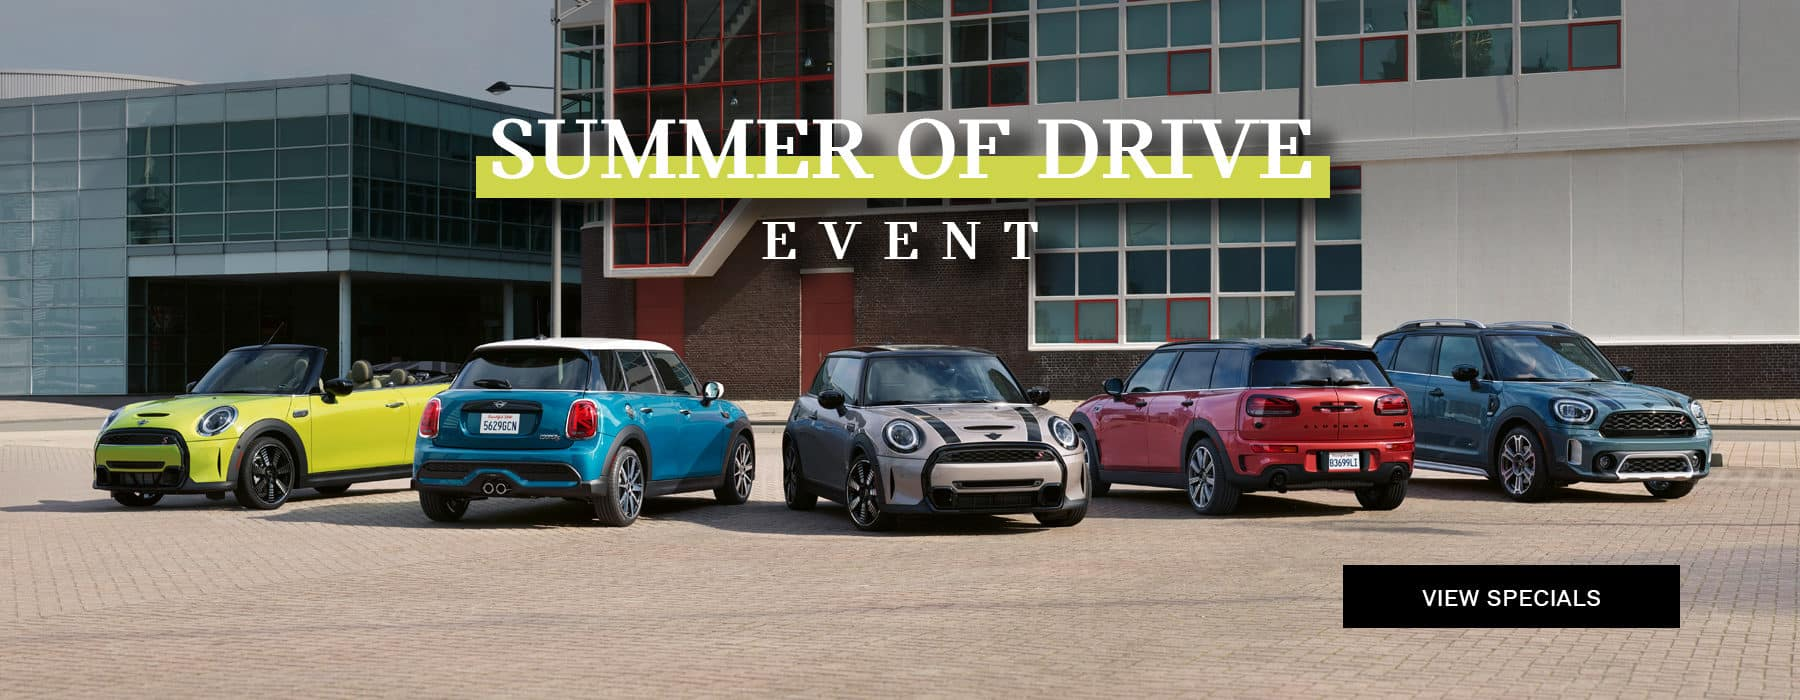 Summer of Drive Event showing the MINI model line up